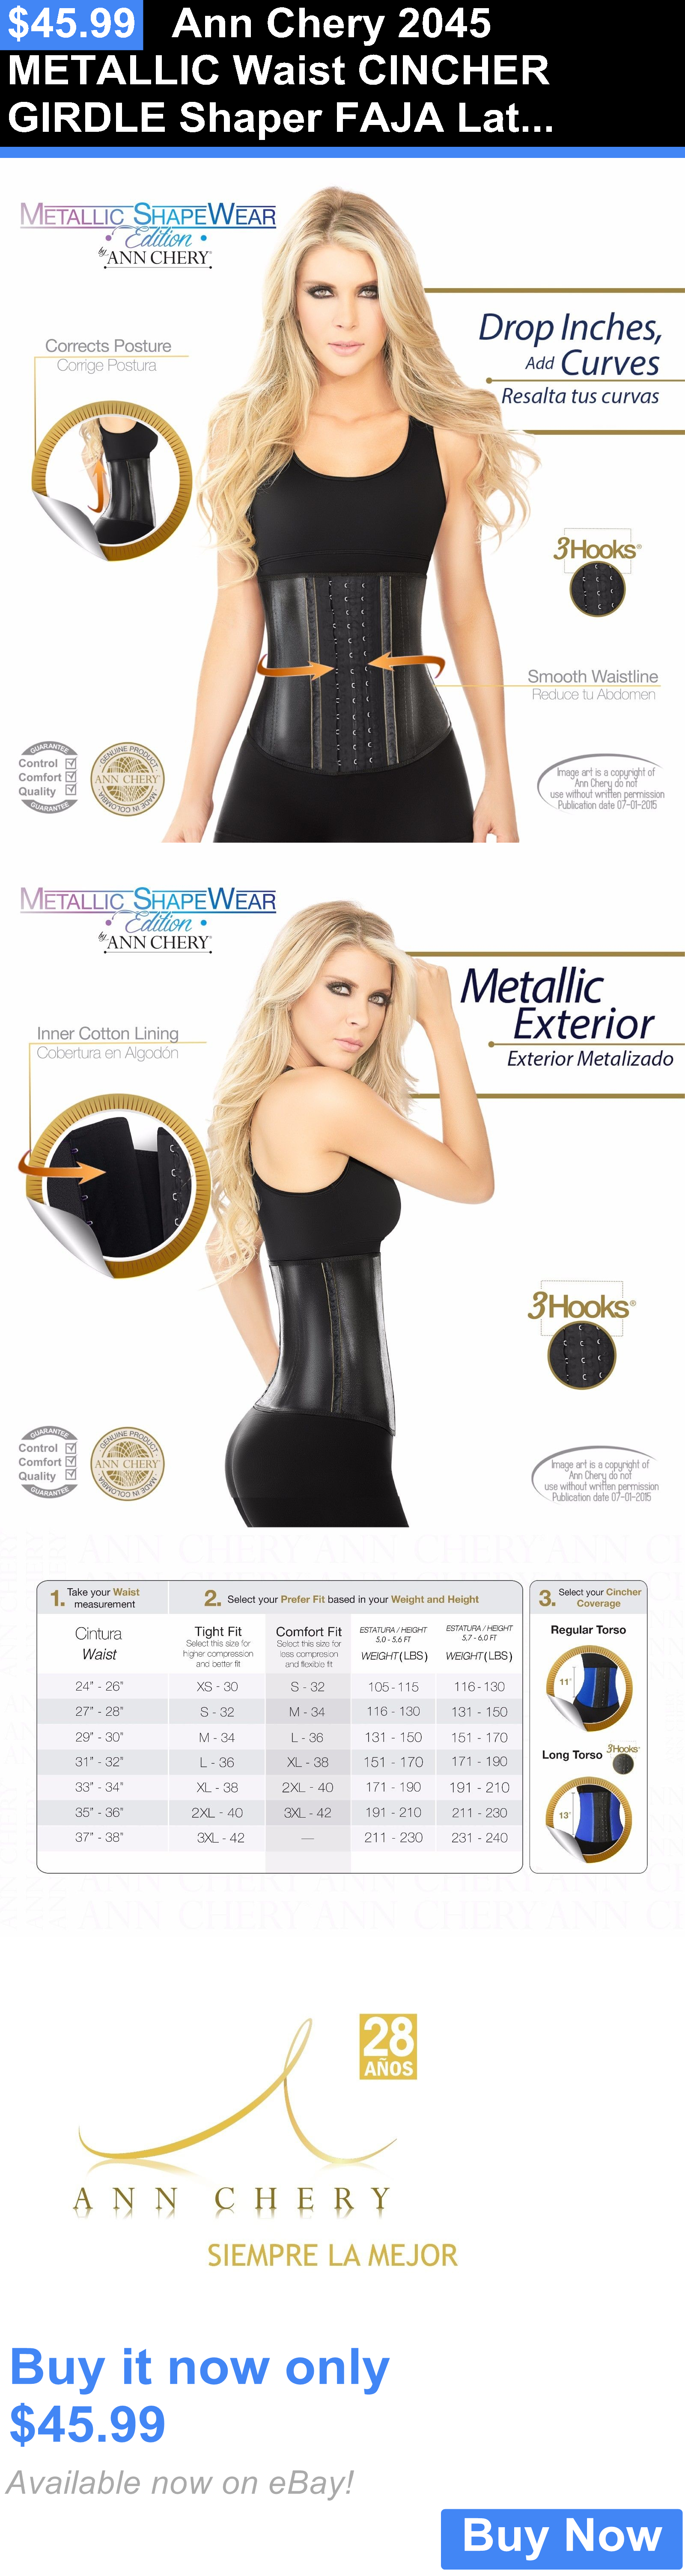 068144f639 Women Shapewear  Ann Chery 2045 Metallic Waist Cincher Girdle Shaper Faja  Latex Black 3 Hooks New BUY IT NOW ONLY   45.99 Shapewear - http   amzn.t…